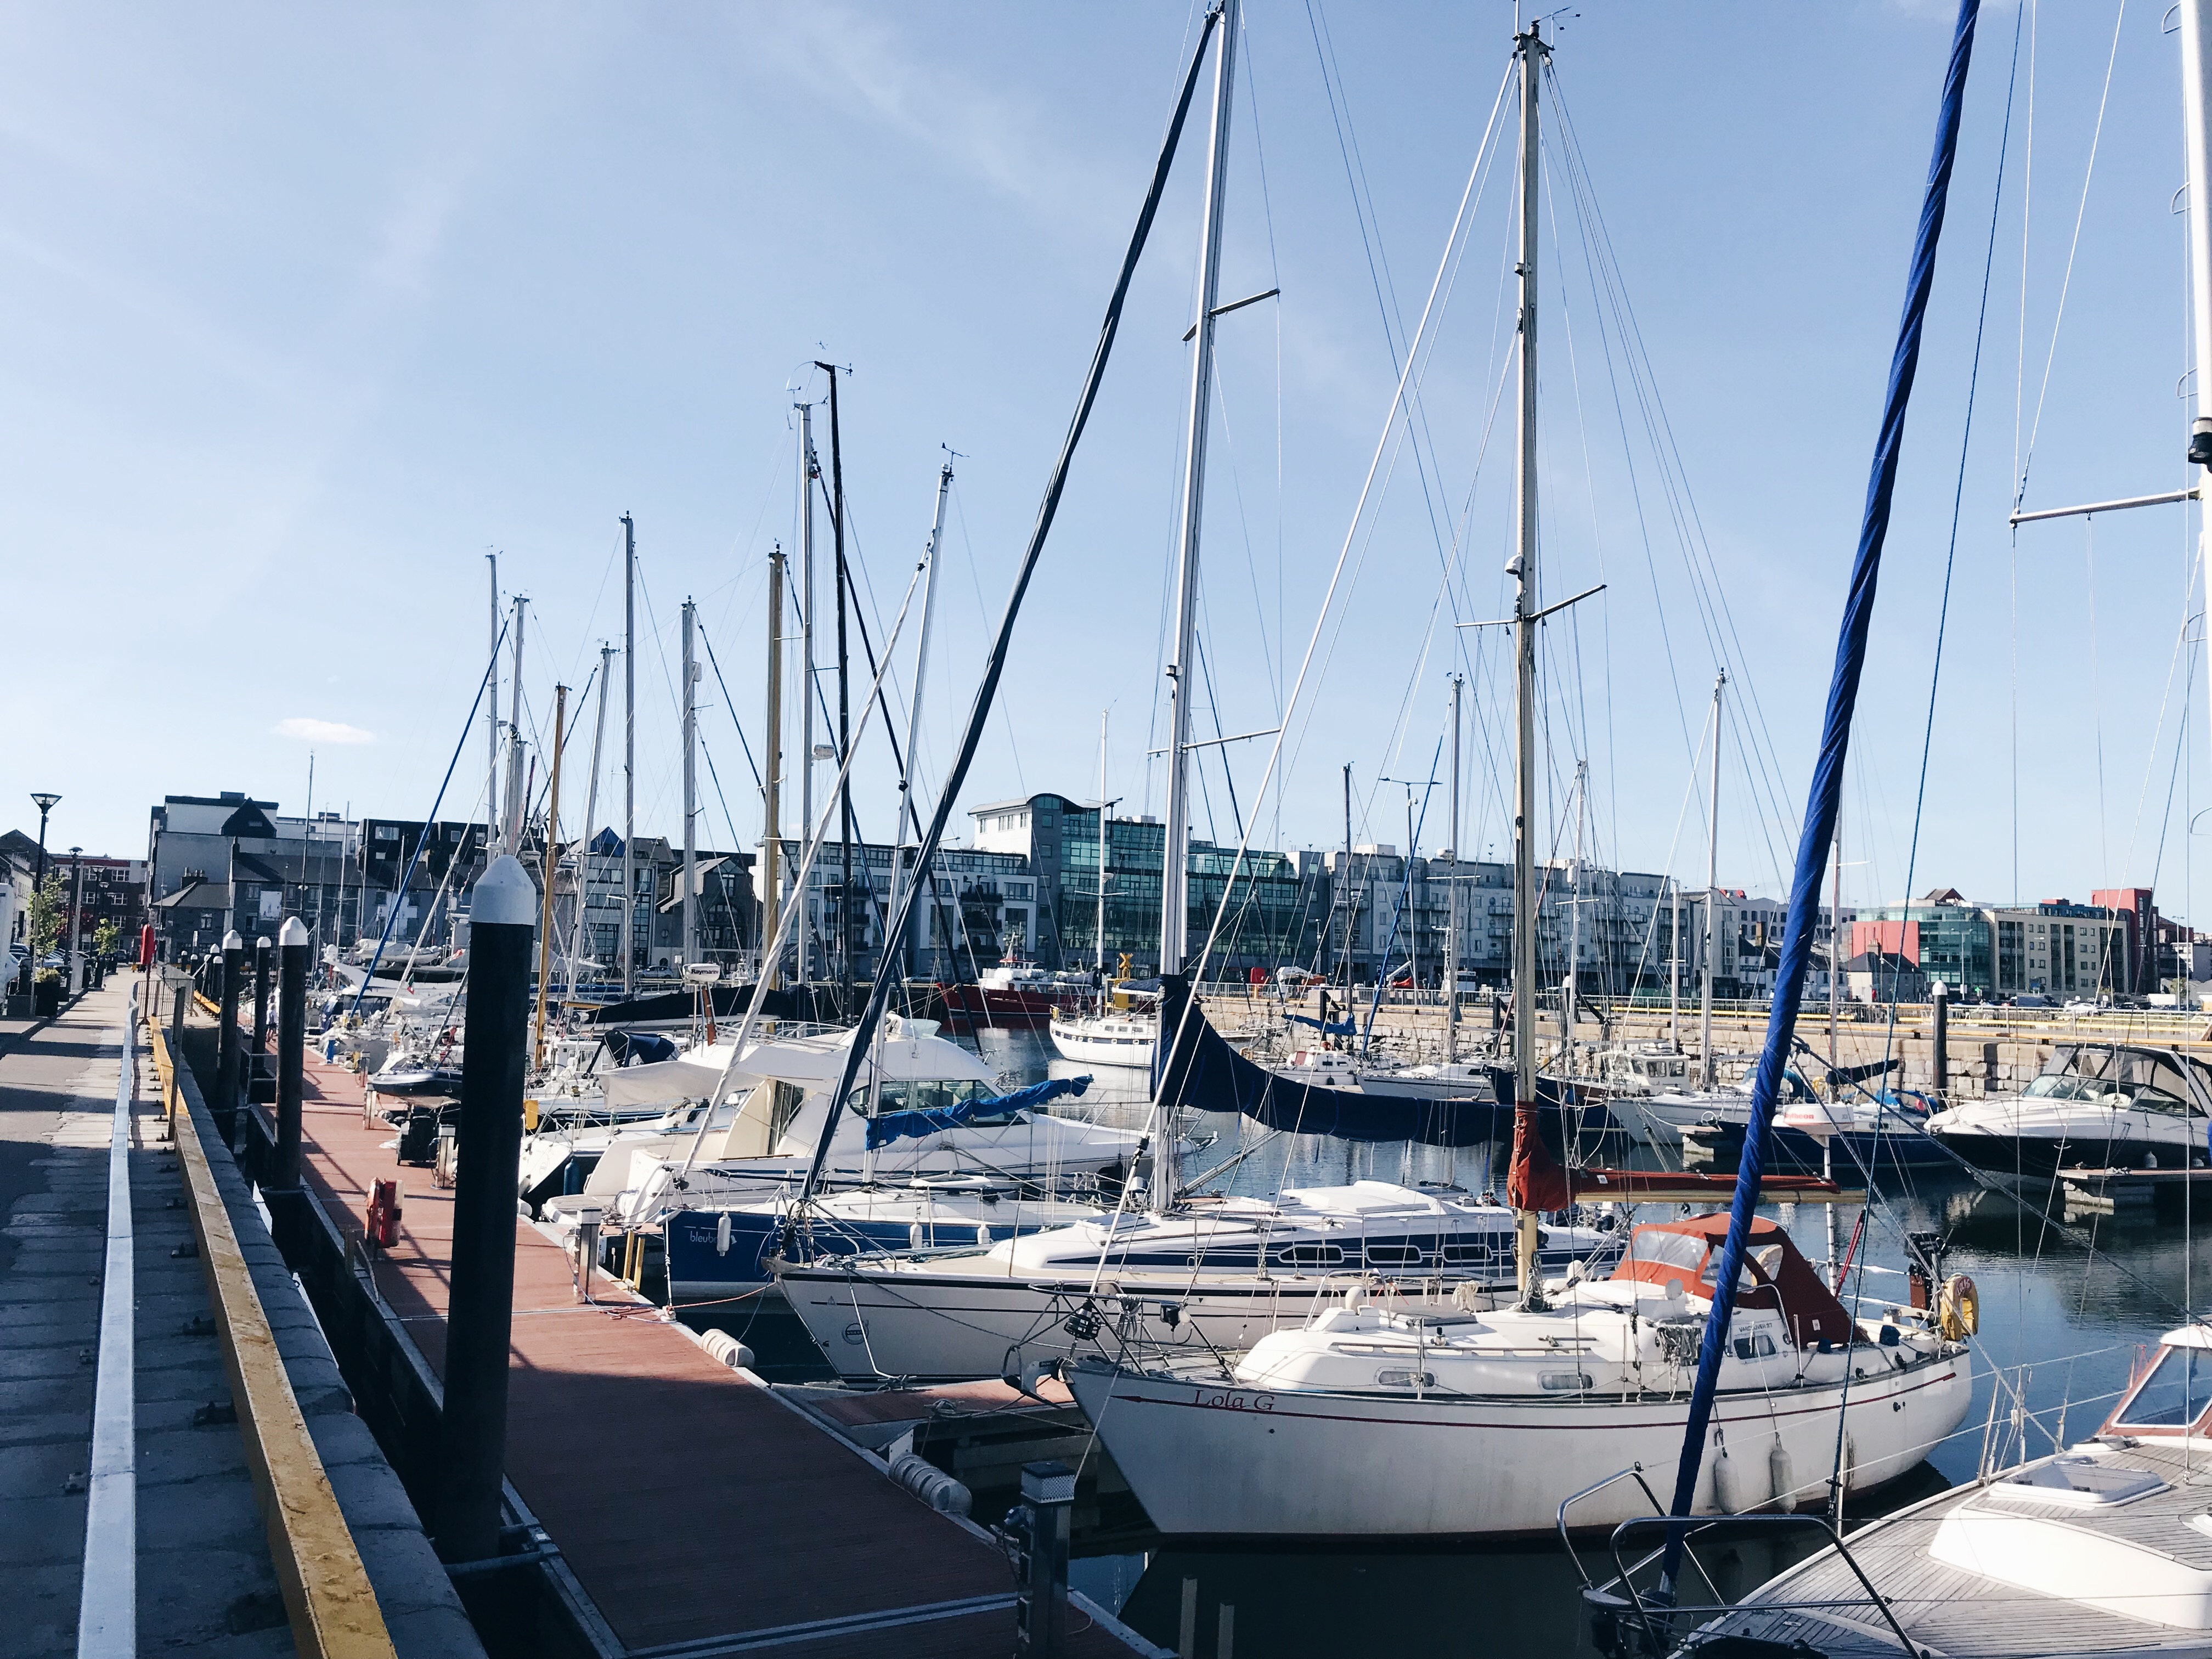 Galway Harbour, things to do in galway ireland